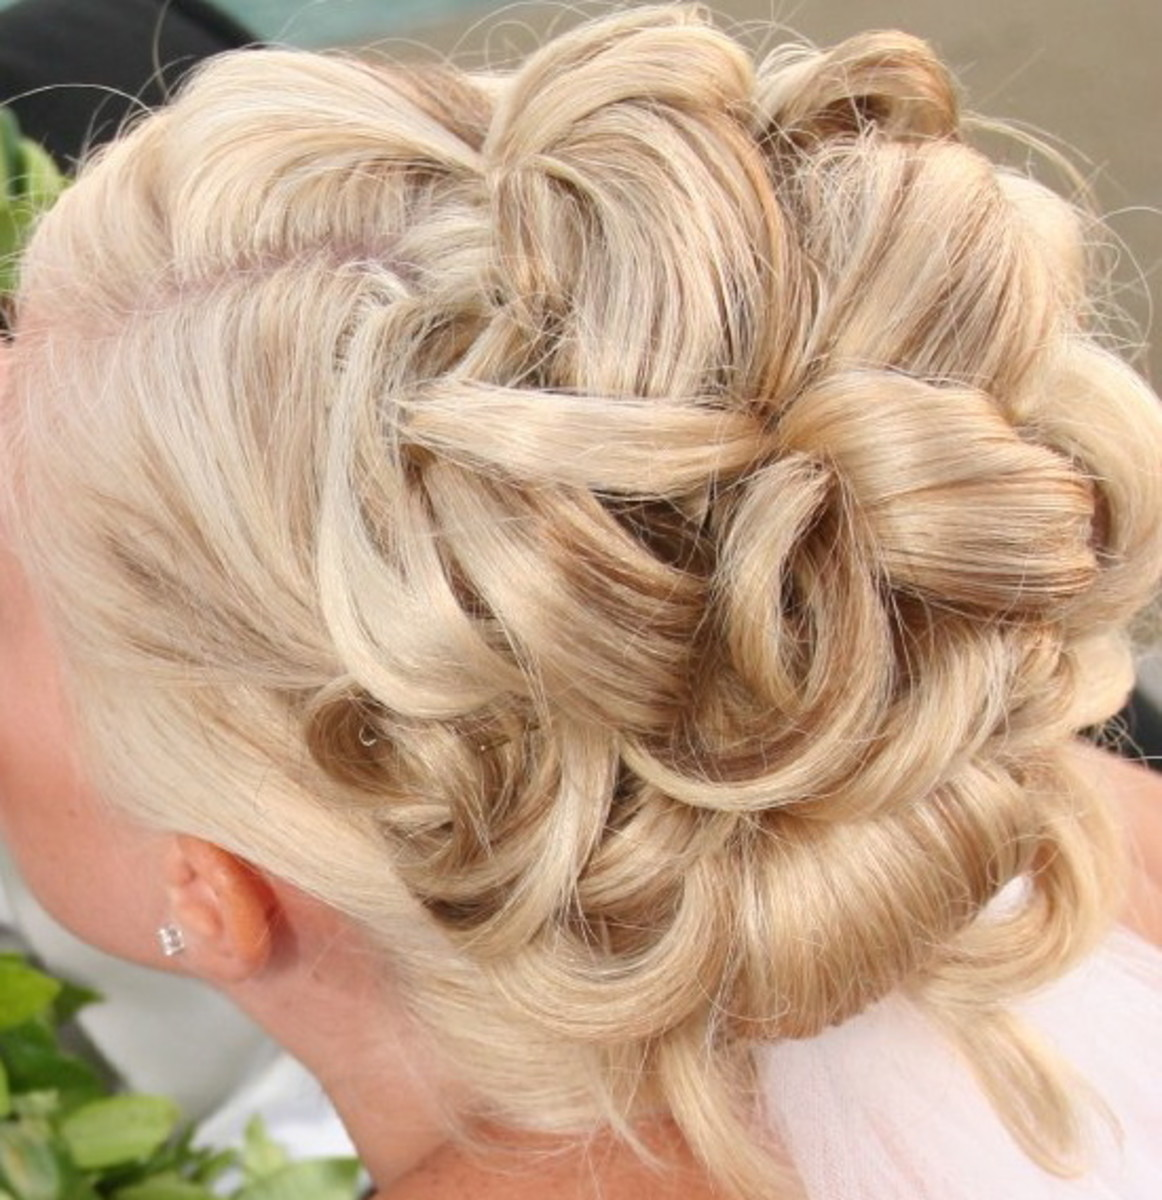 bridesmaid hairstyles half up half down updo and all down